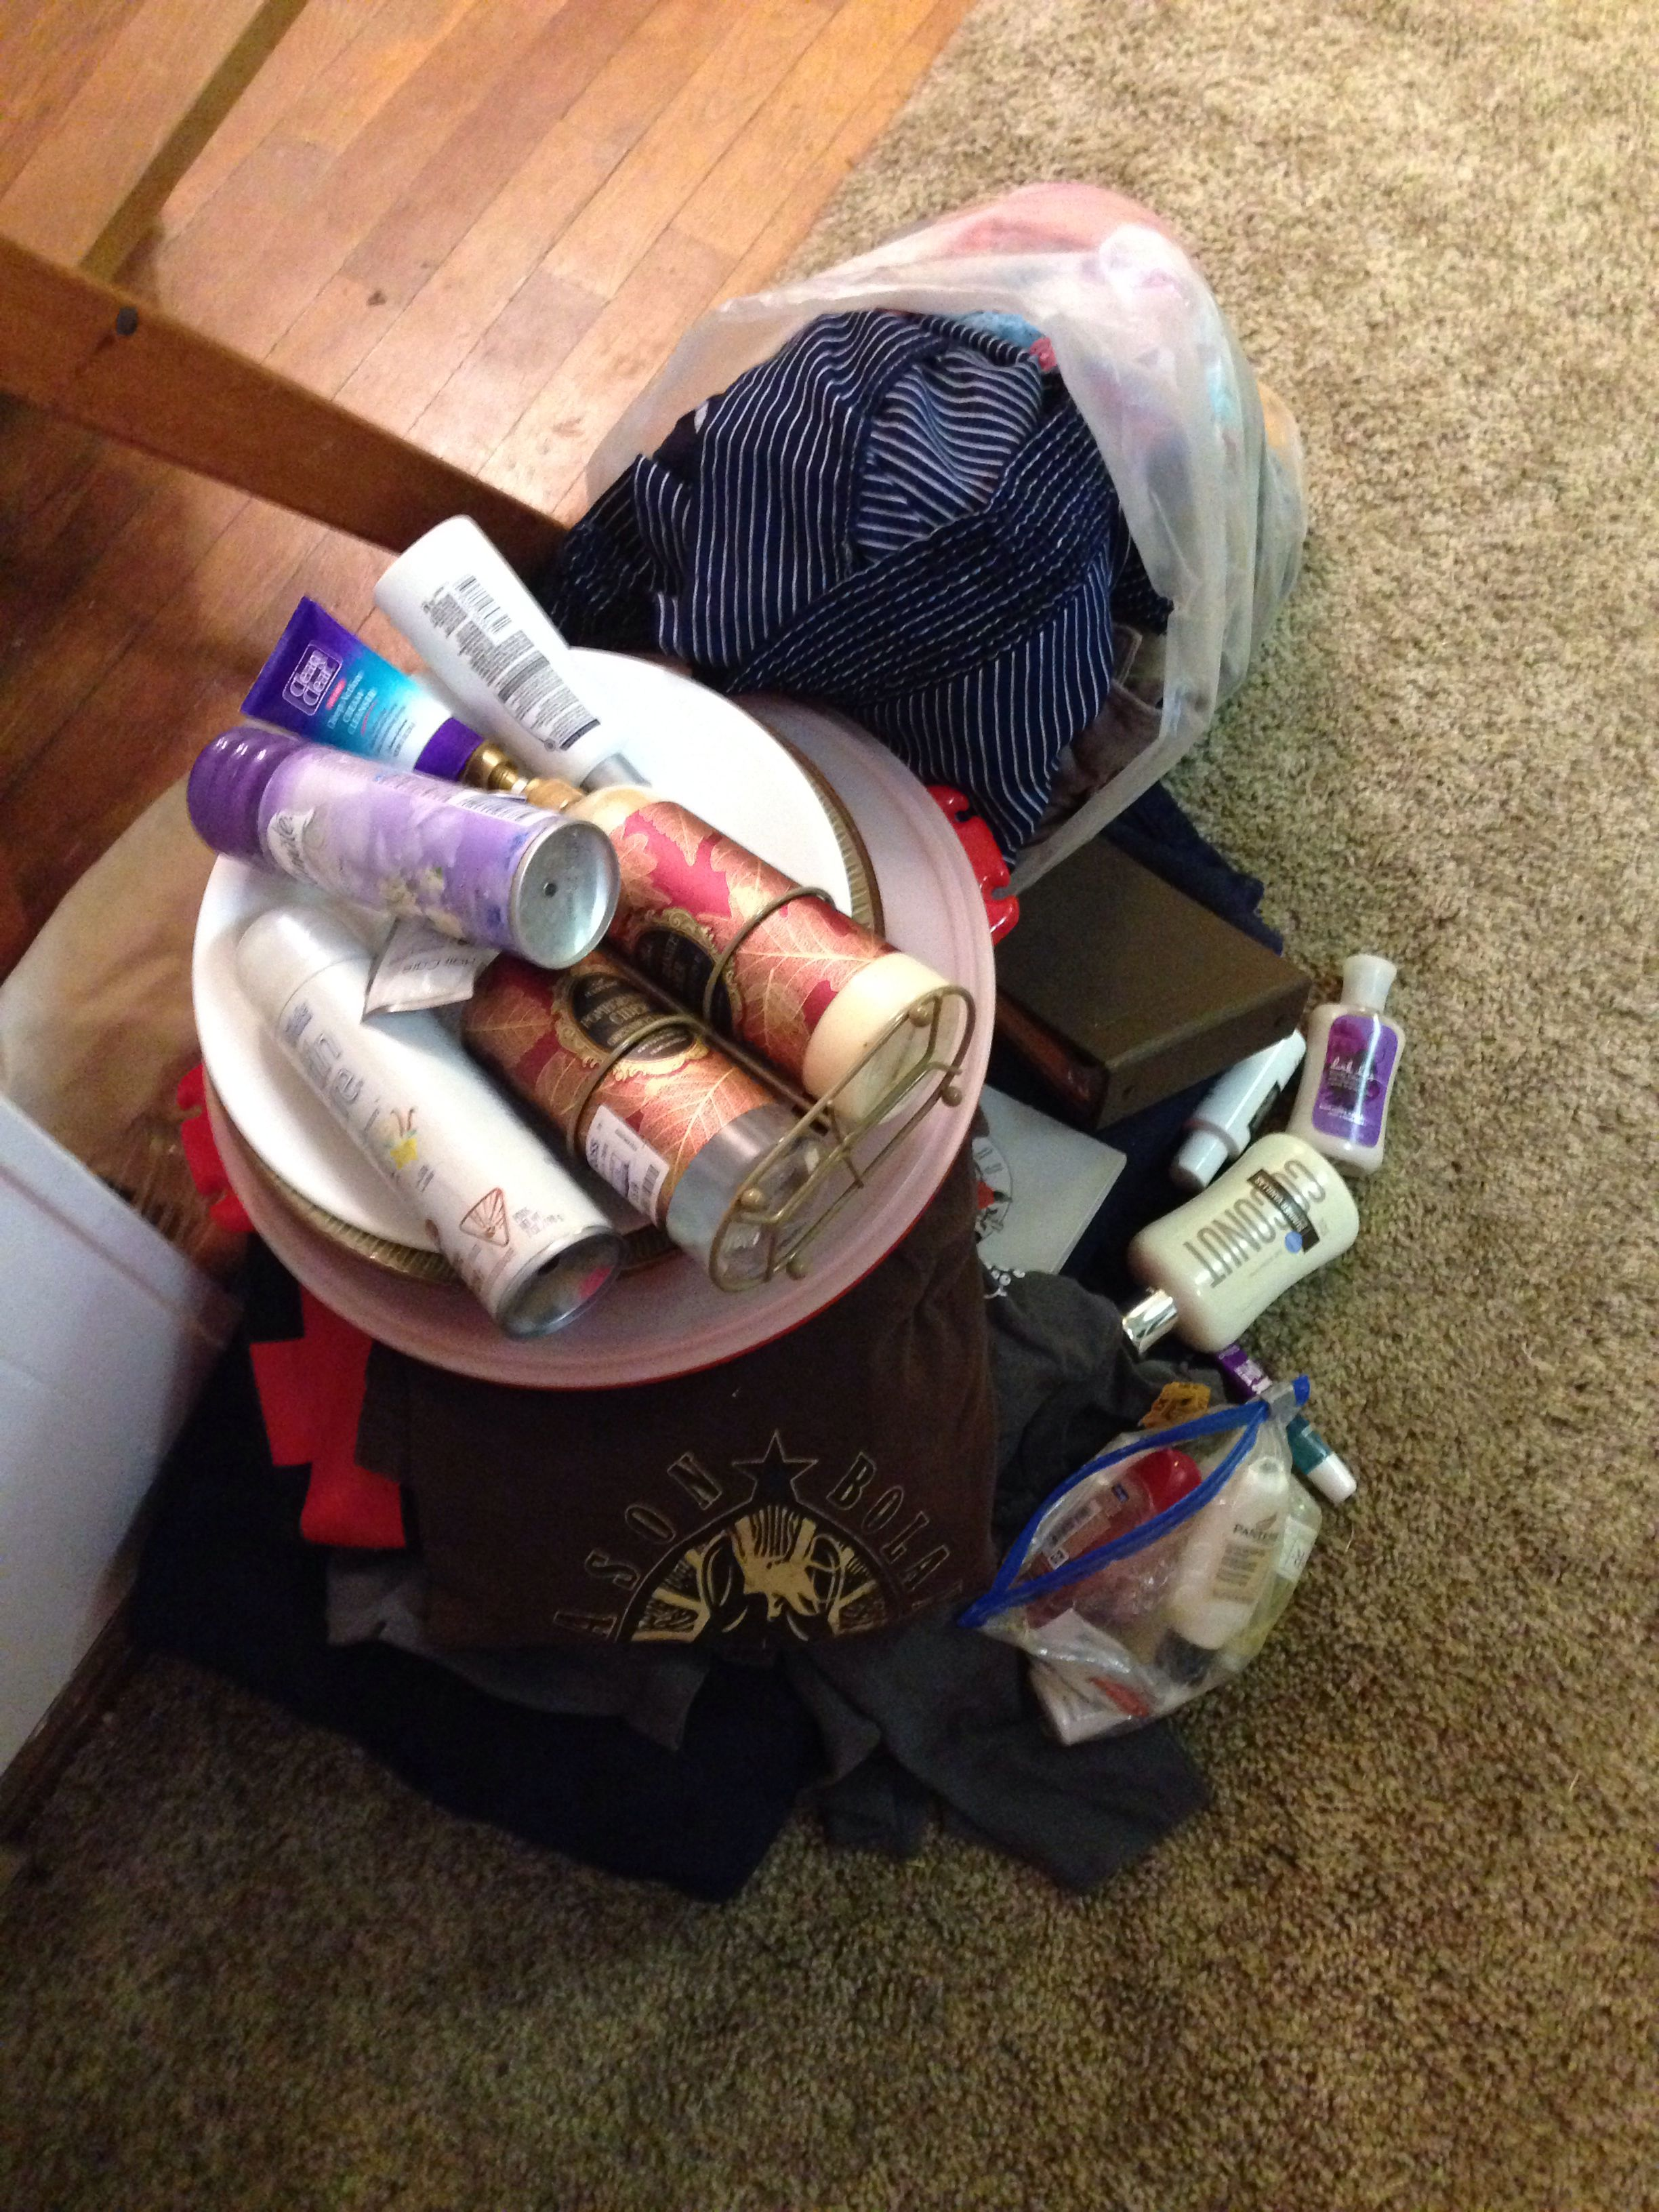 3/11/2014 - Bye bye, excess! #40bagsin40days